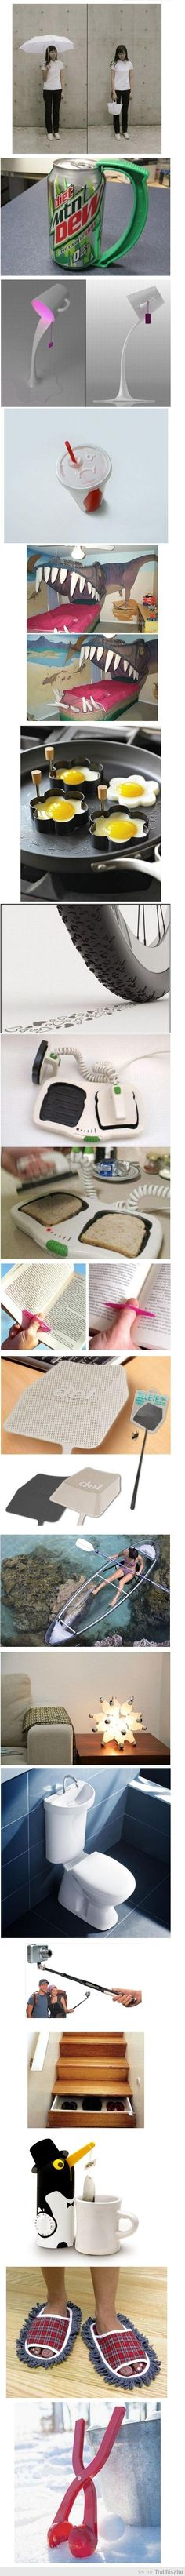 Interesting Inventions - i don't know why, but i want ALL of these things....